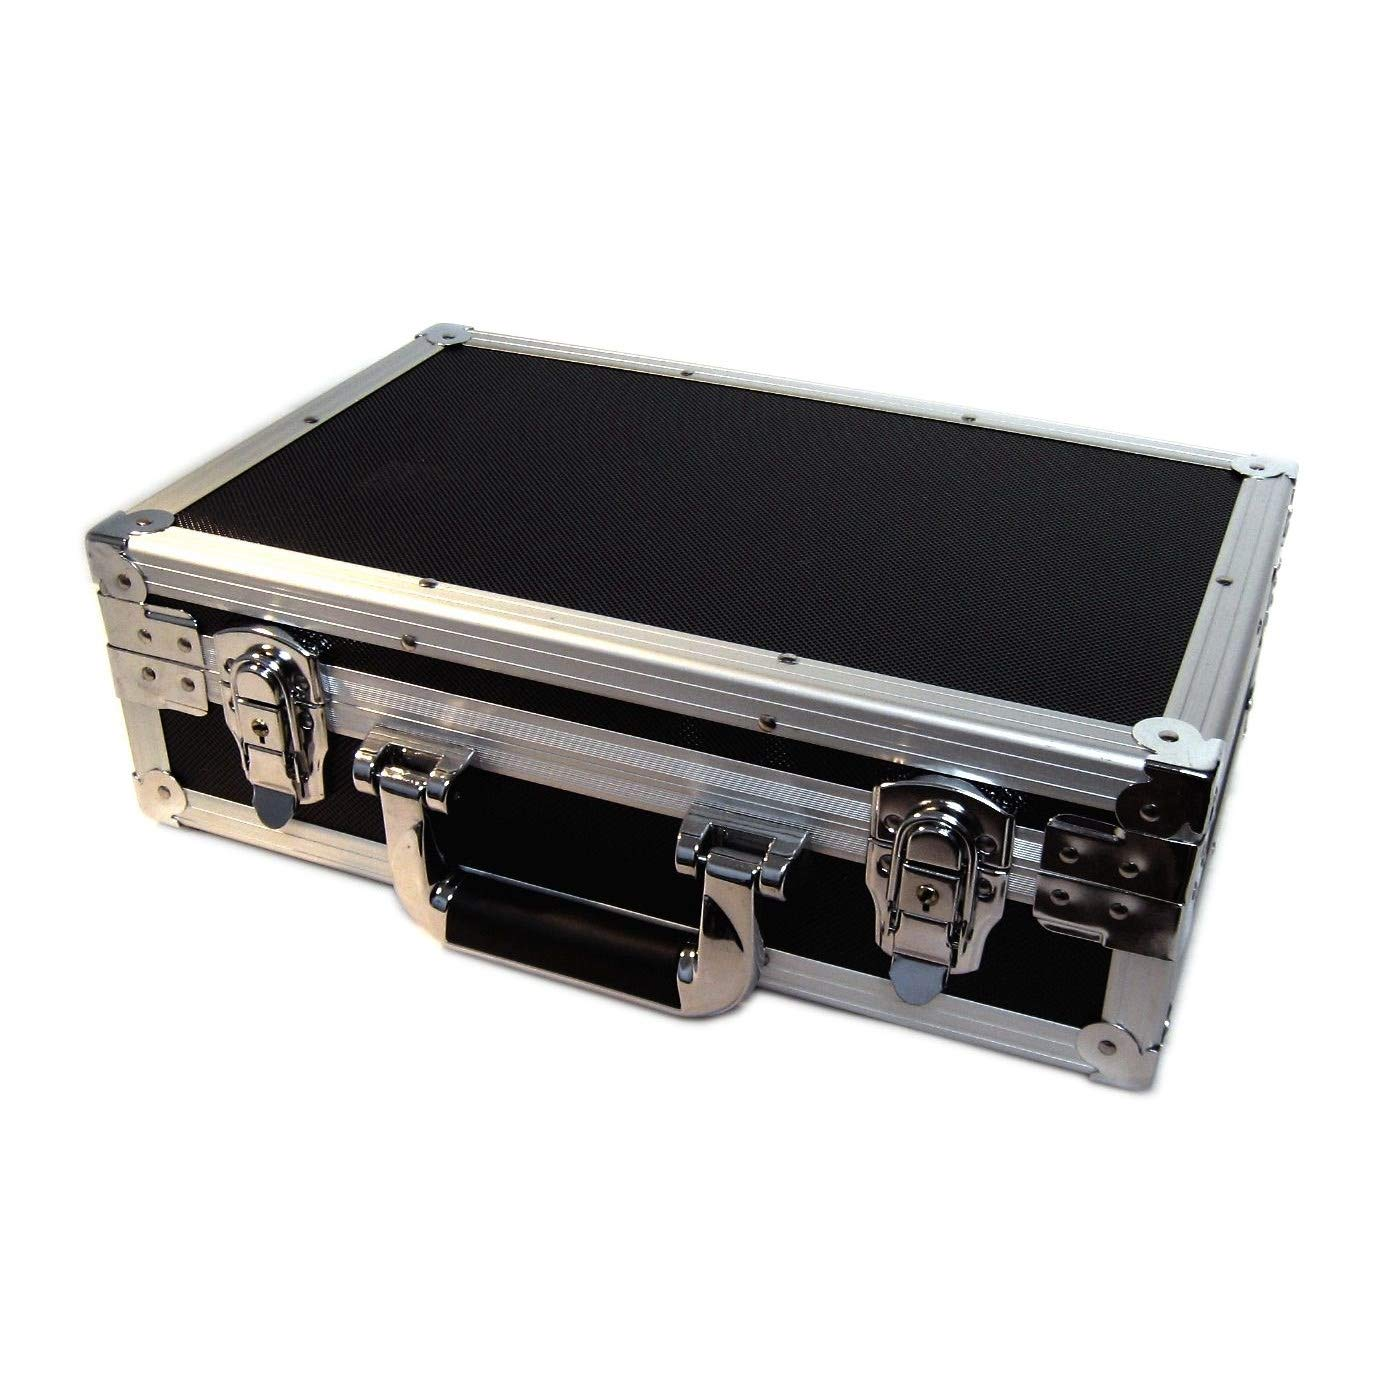 U1 Black Metal Storage Case for Trading Cards TCG Ultra Pro Deck Protector Sleeve Deck Box MTG Magic the Gathering YGO Yugioh Match Attax Board Games Sports Wow Pokemon Toploader Vanguard Carry Cube